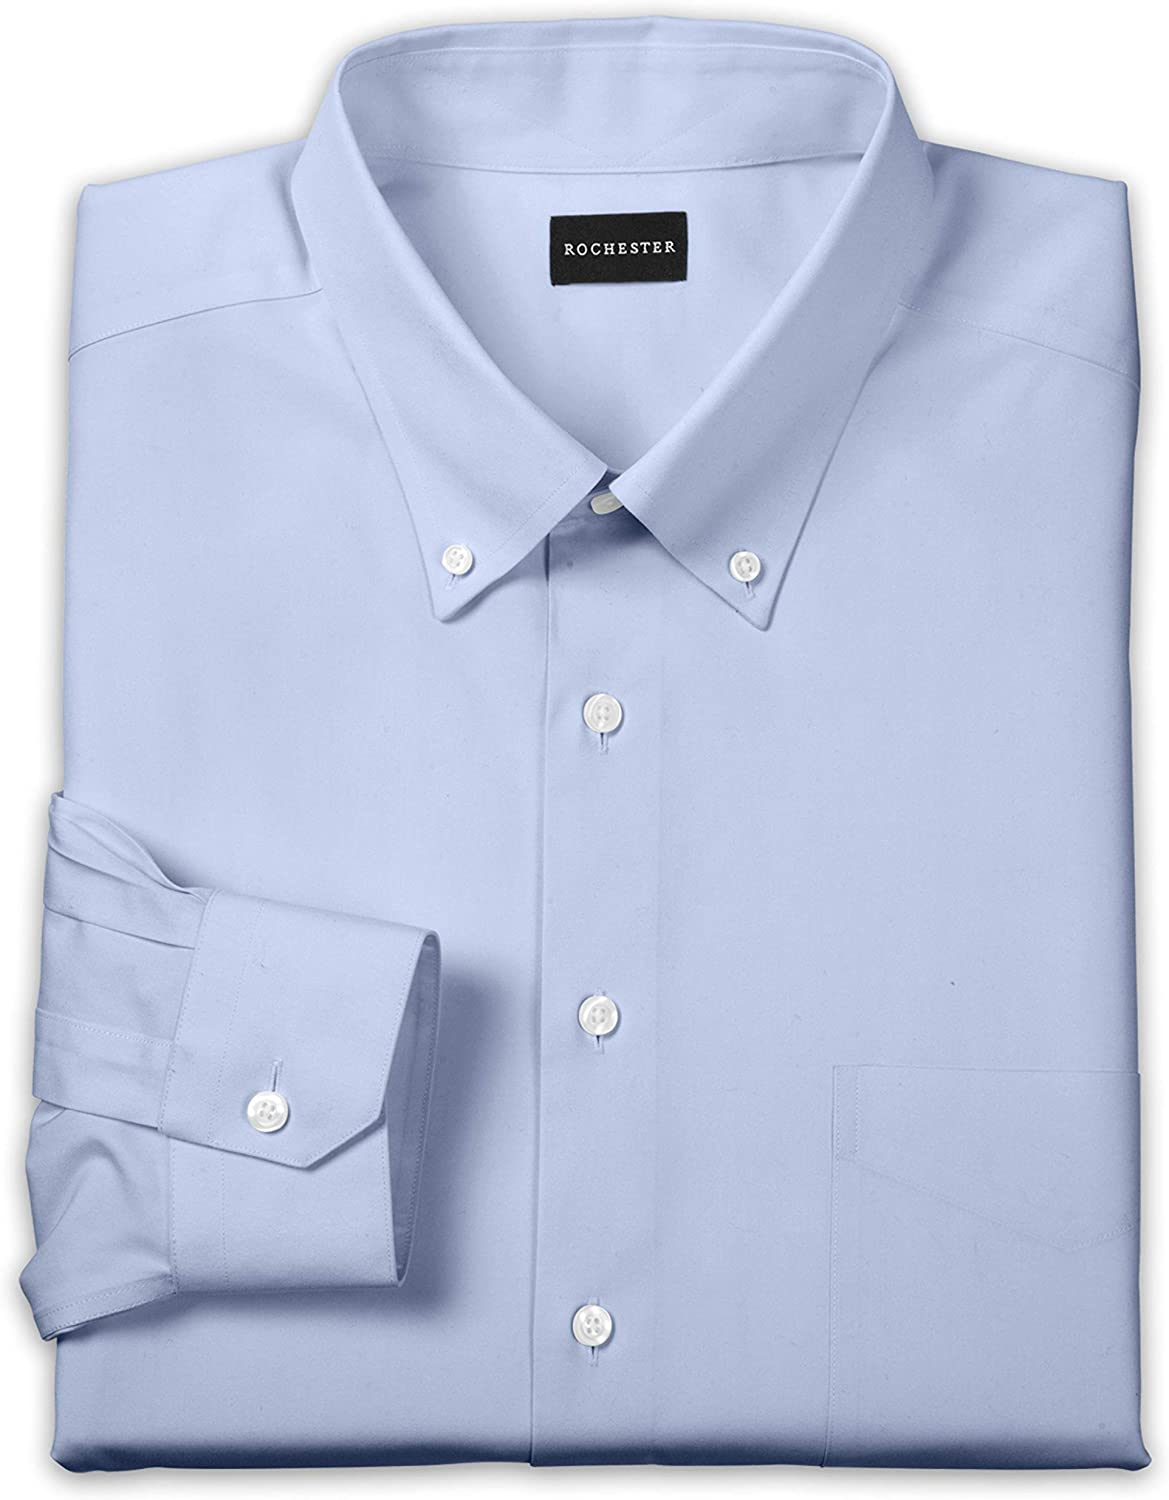 Rochester by DXL Big and Tall Oxford Pinpoint Dress Shirt